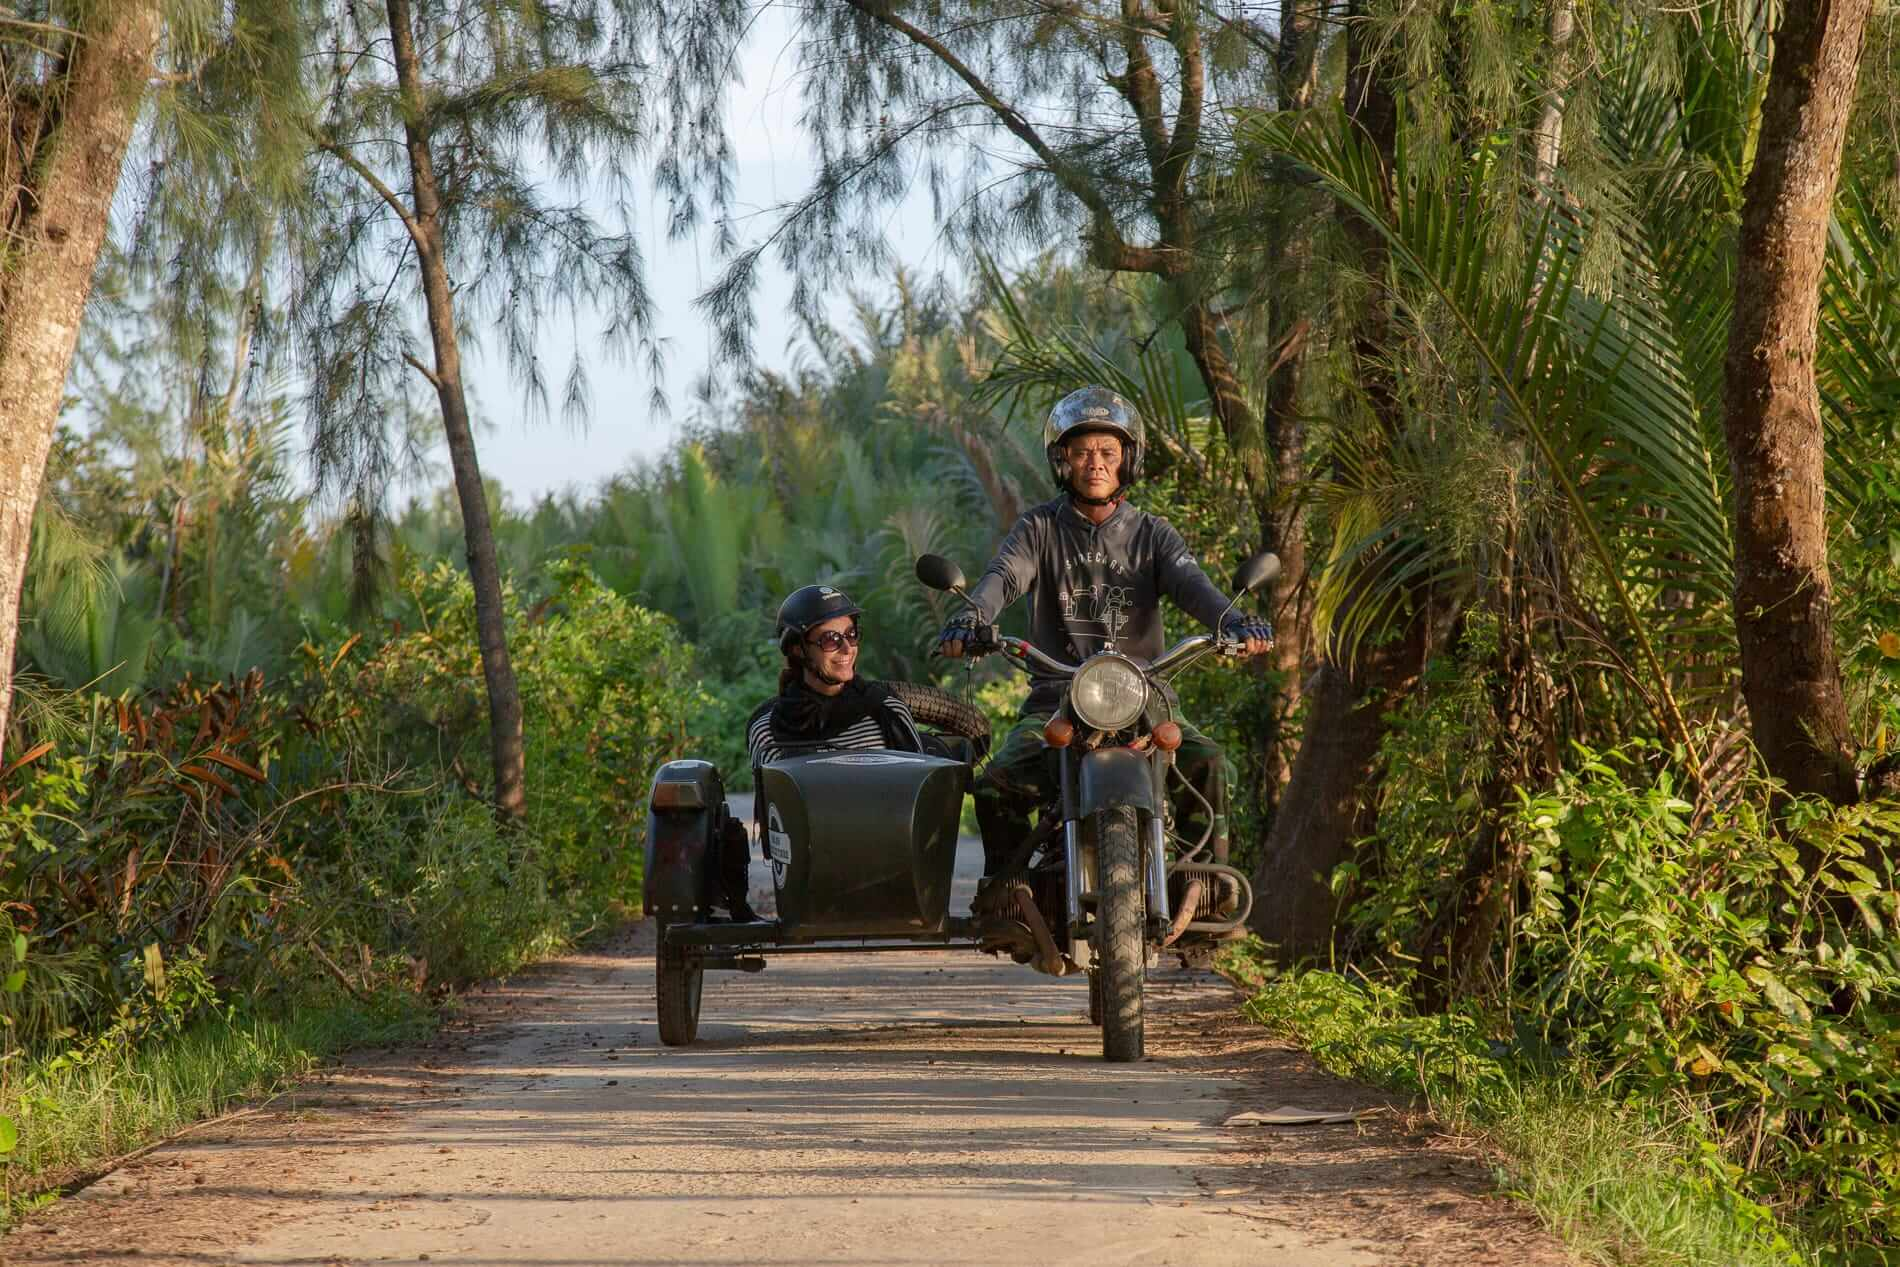 Going on a sidecar tour in Hoi An